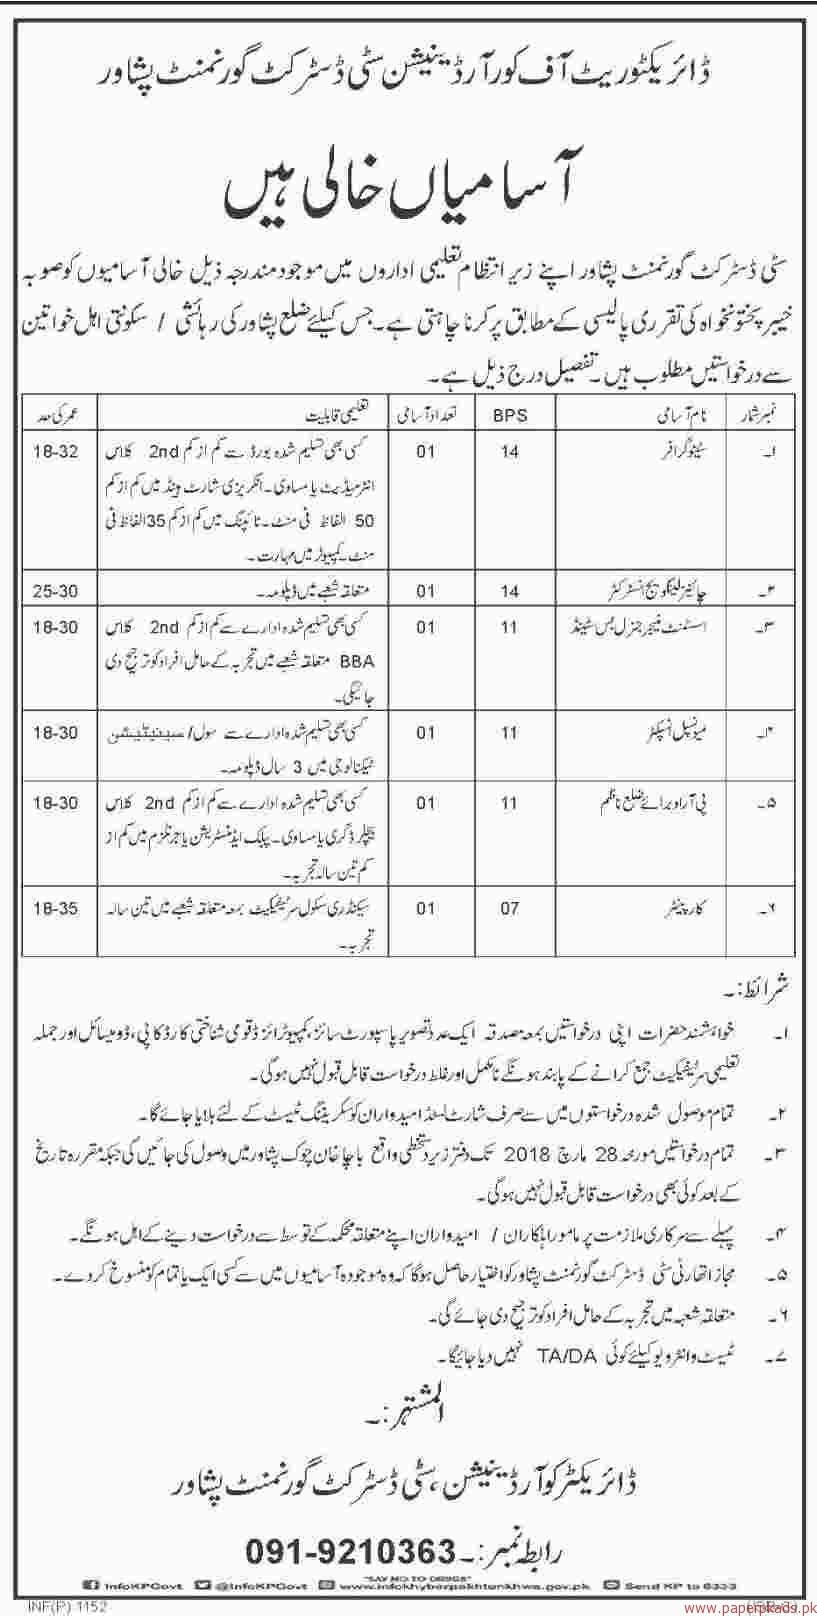 Directorate of Coordination City District Government Peshawar Jobs 2018